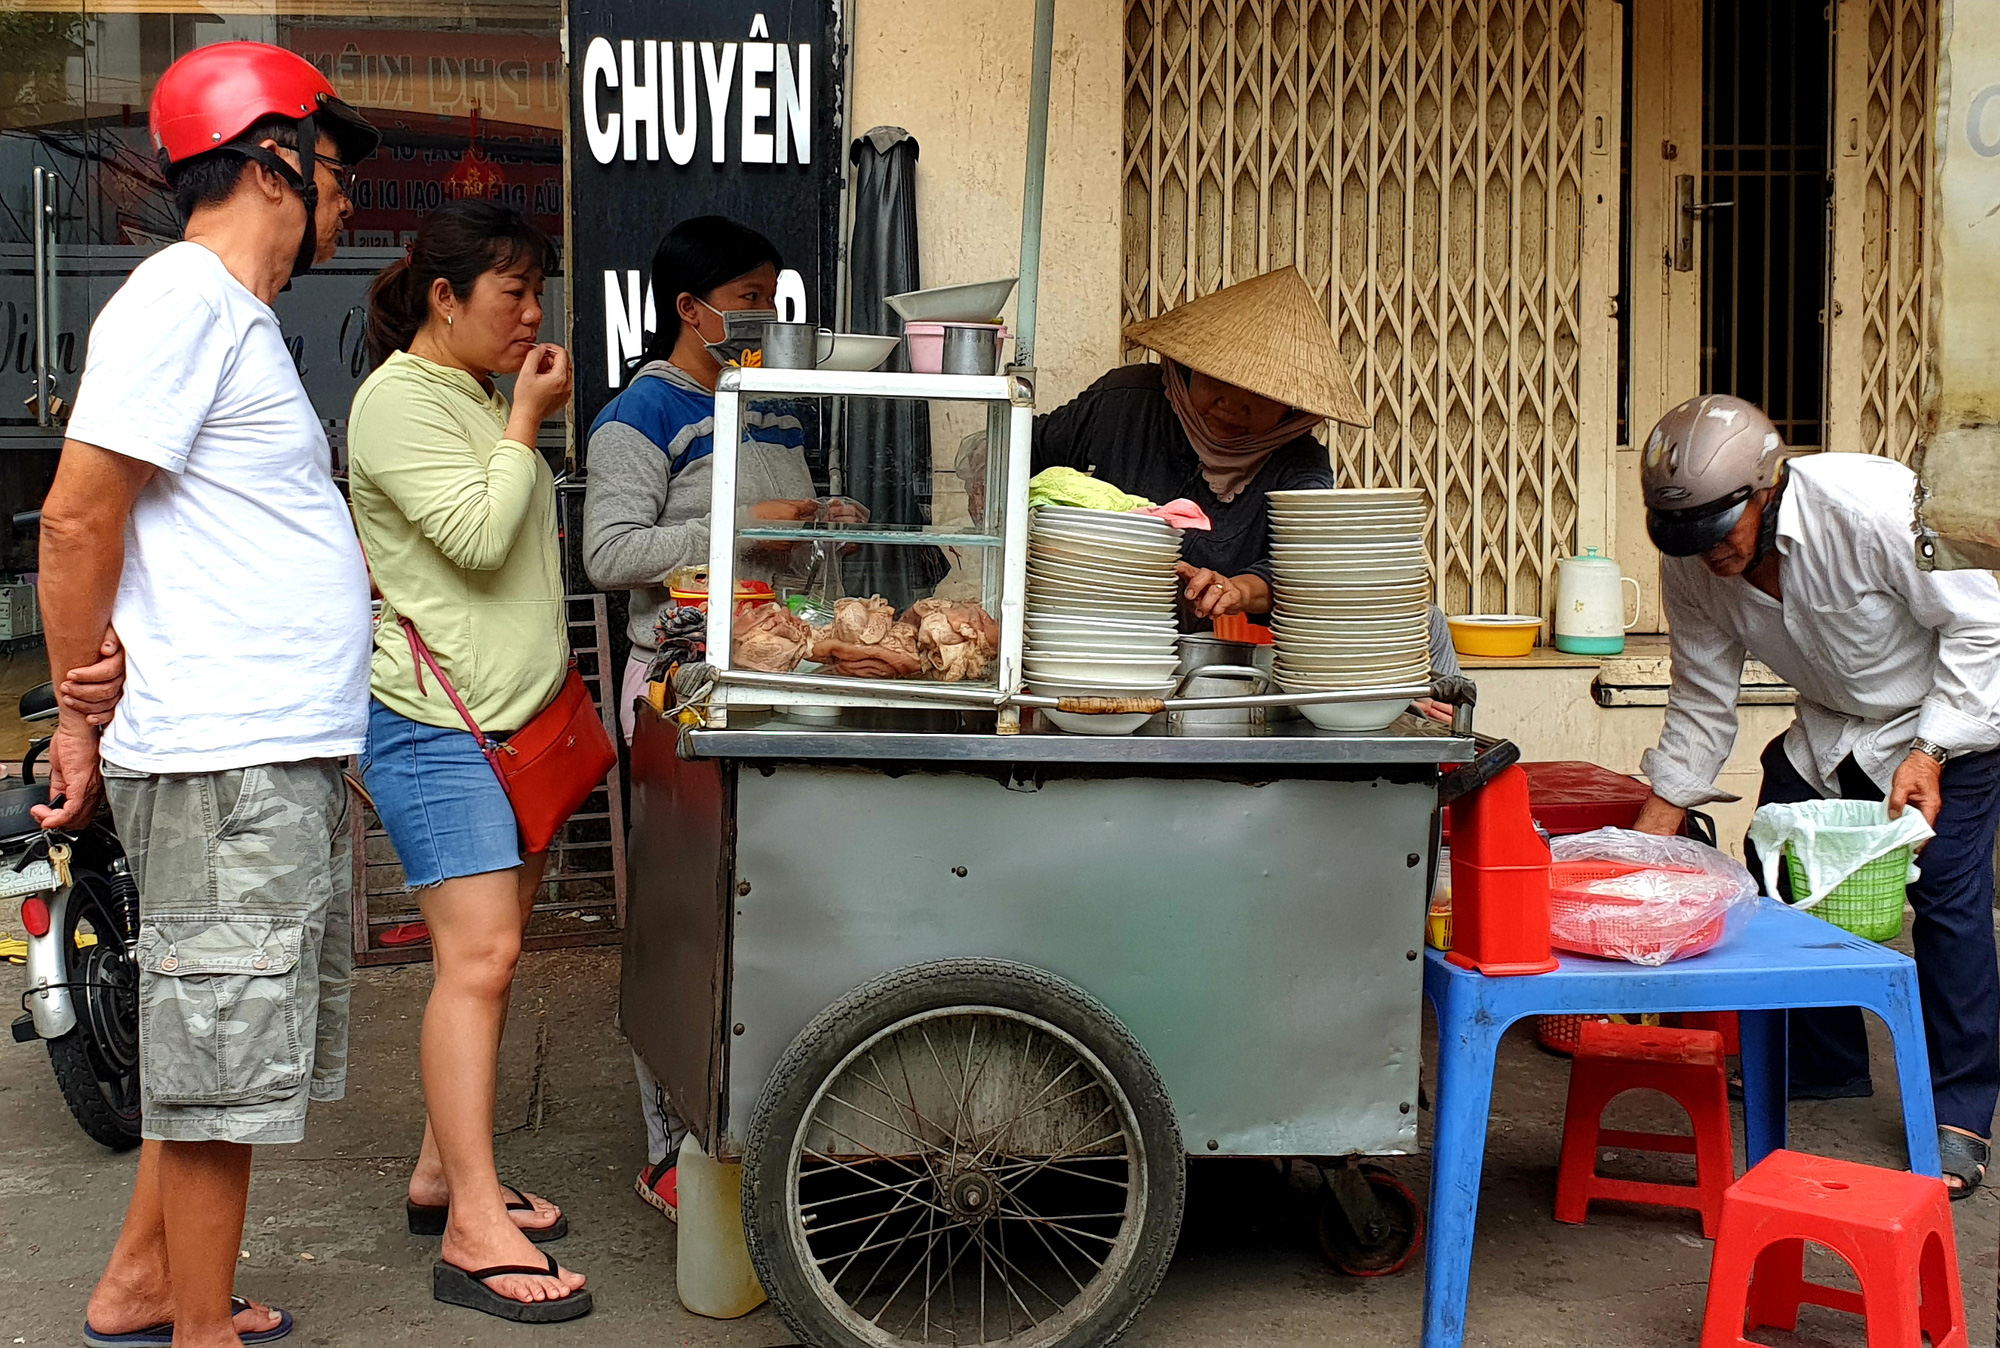 Ho Chi Minh City diners raise costs as pork prices keep surging